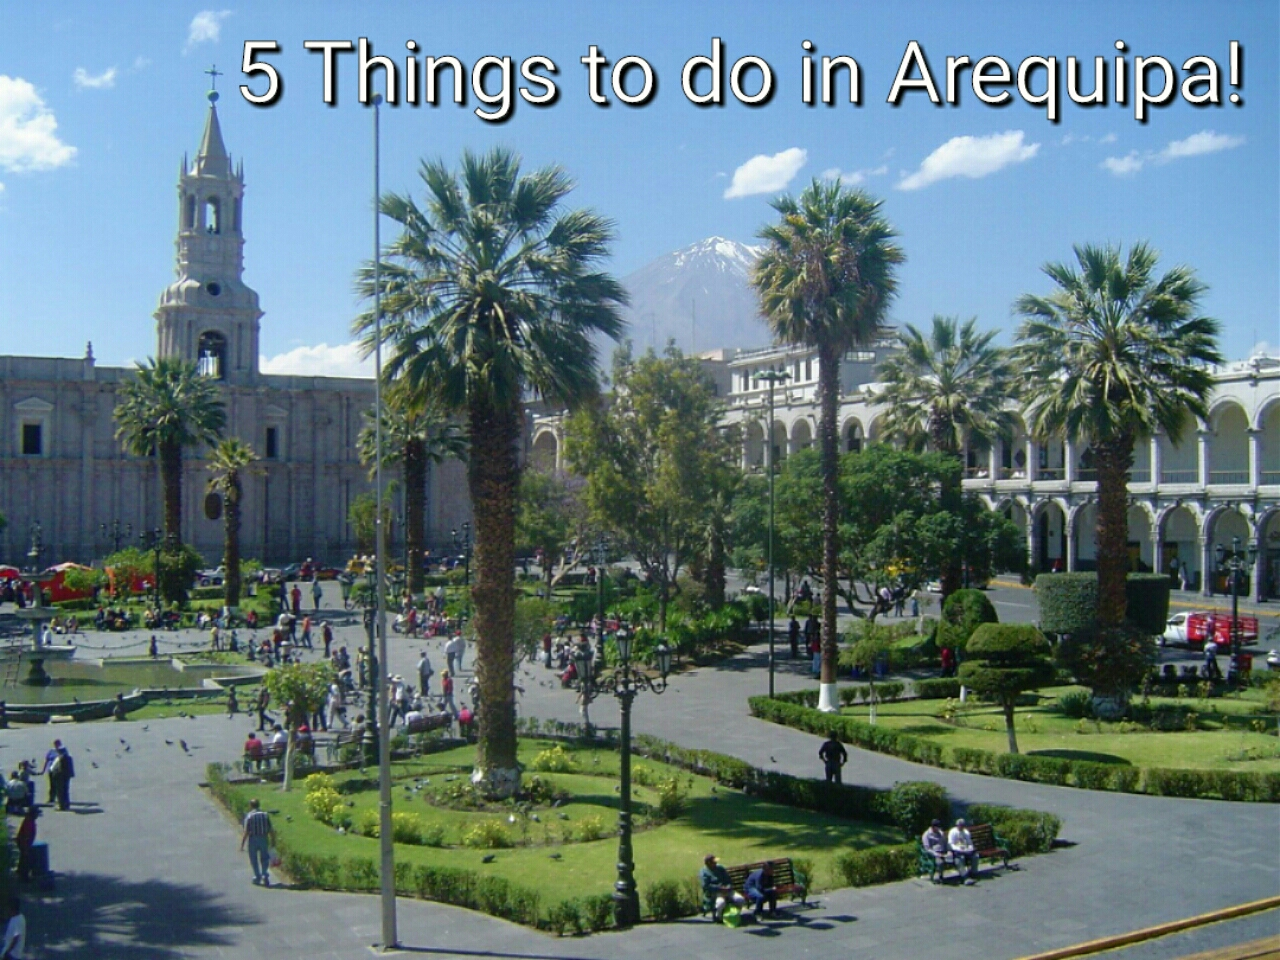 5 Things to do in Arequipa, Peru!